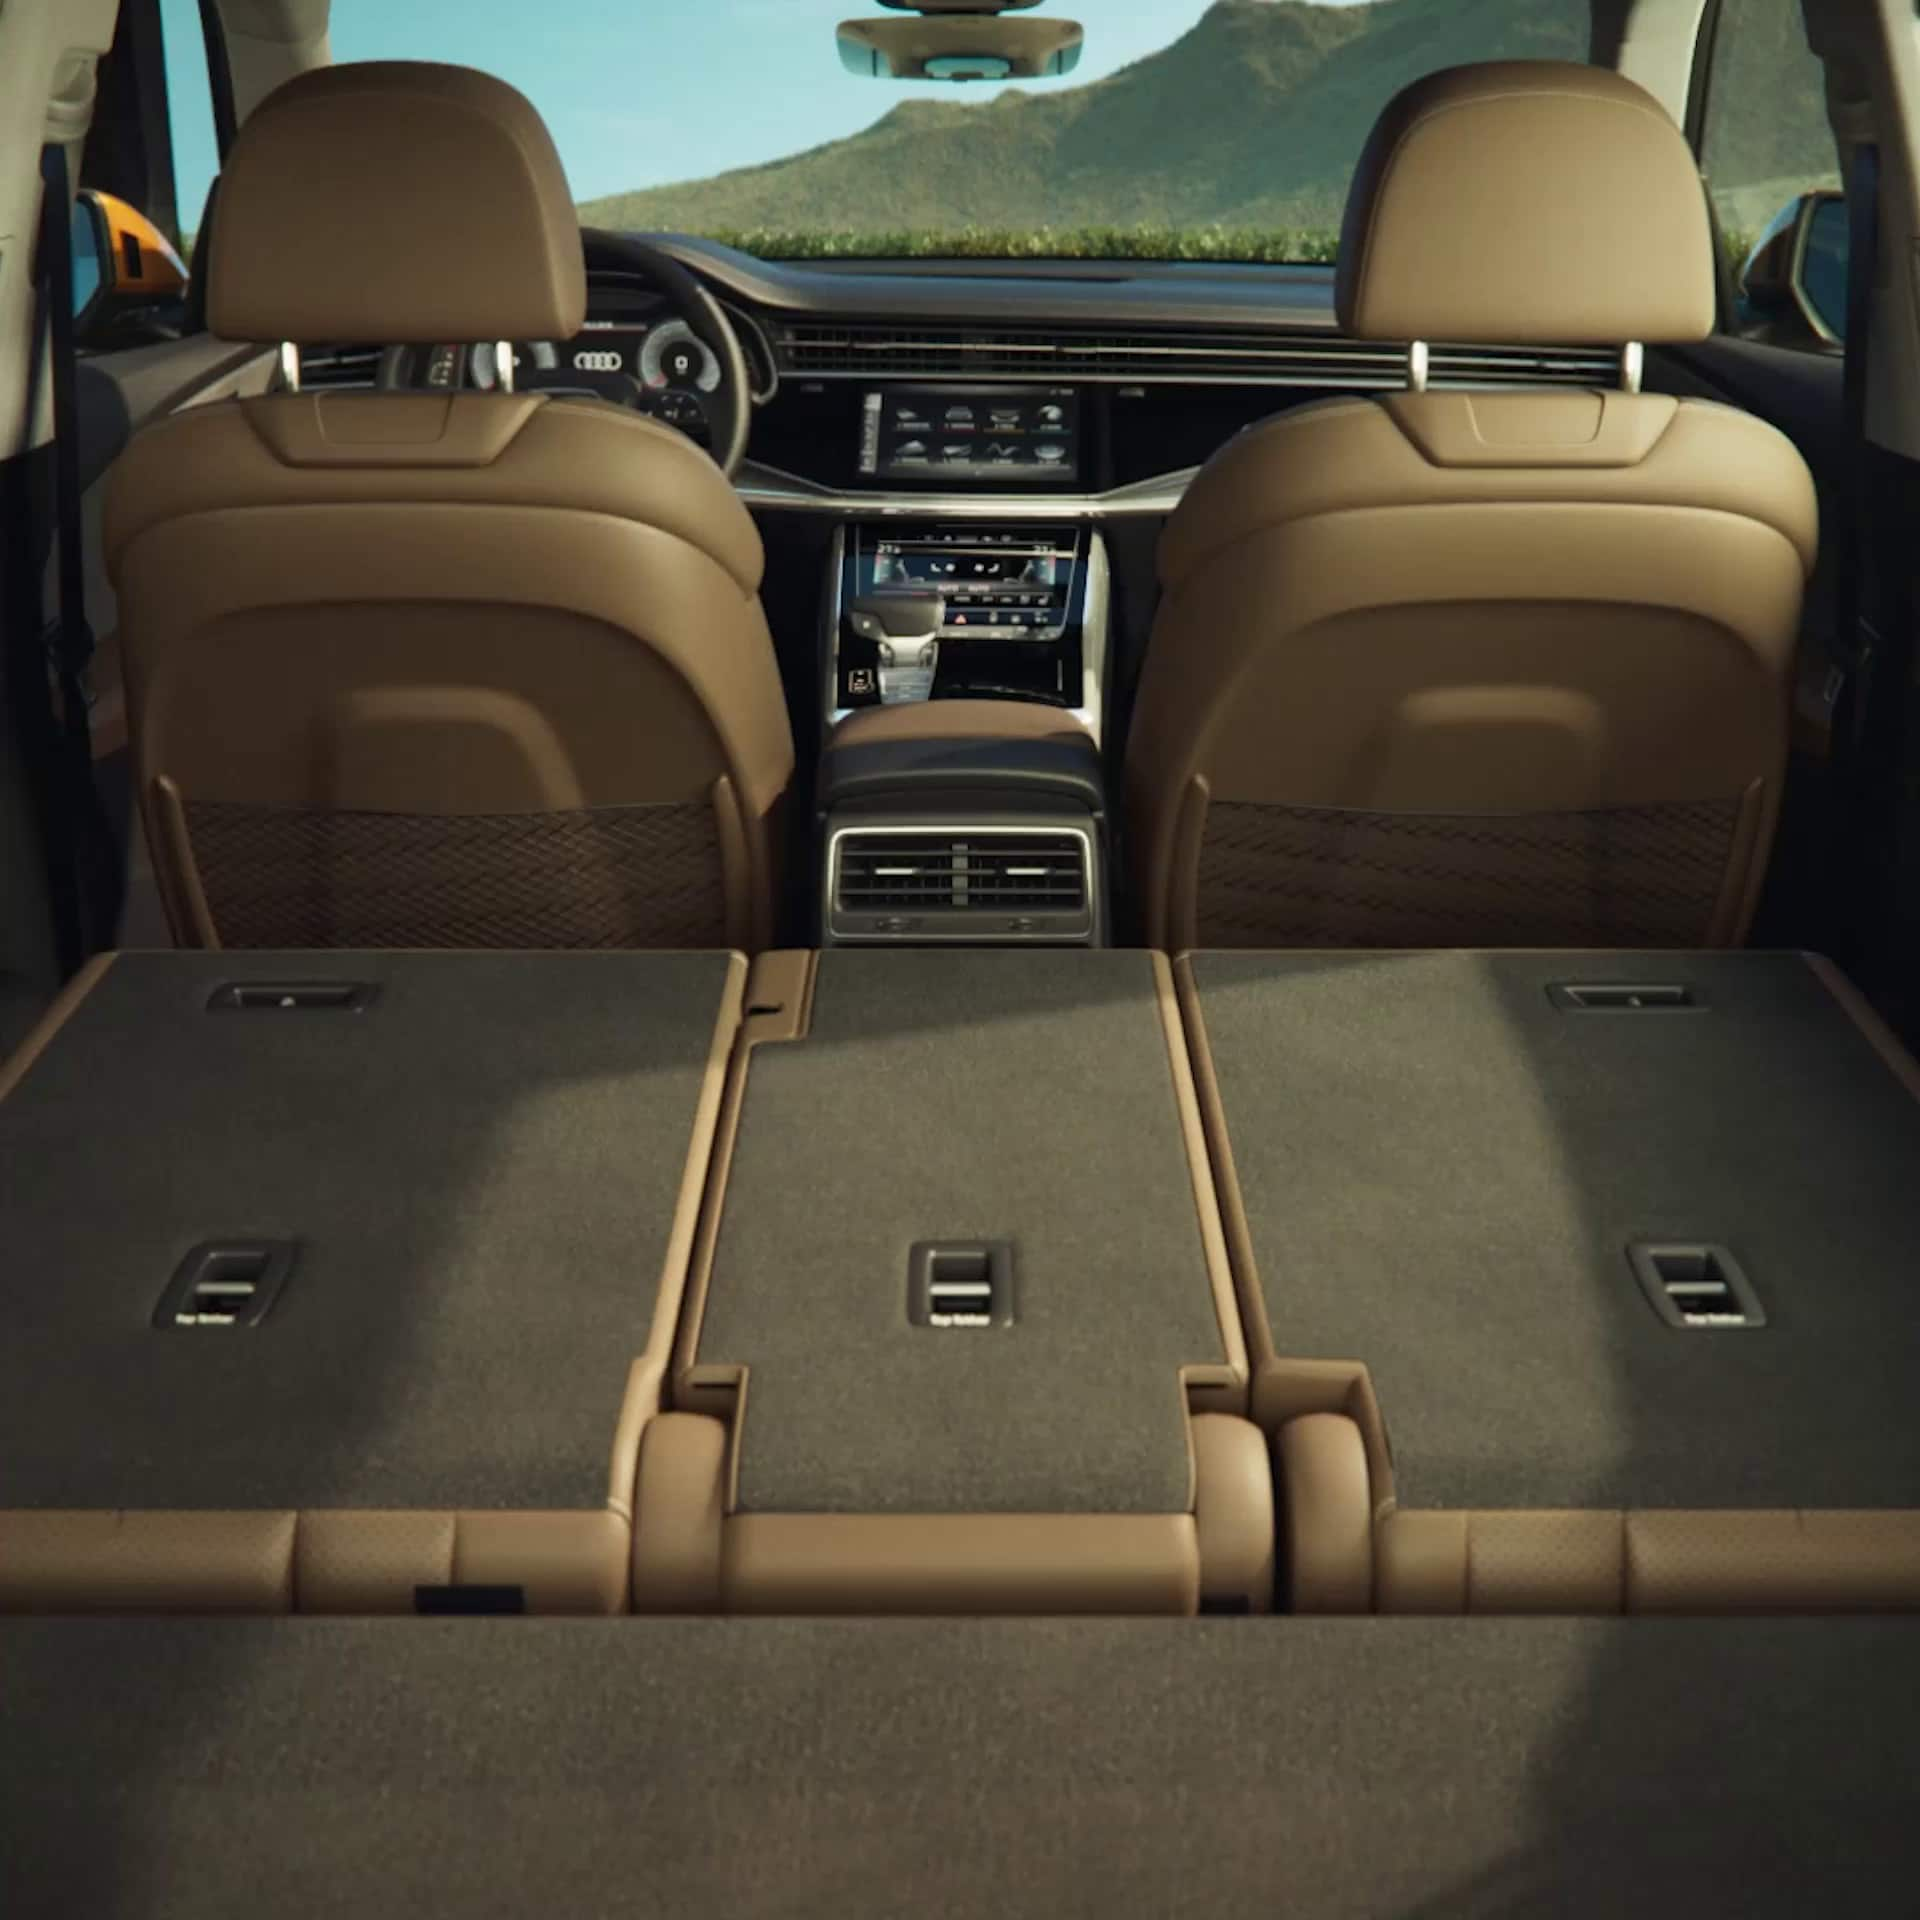 Animated backseats Audi Q8